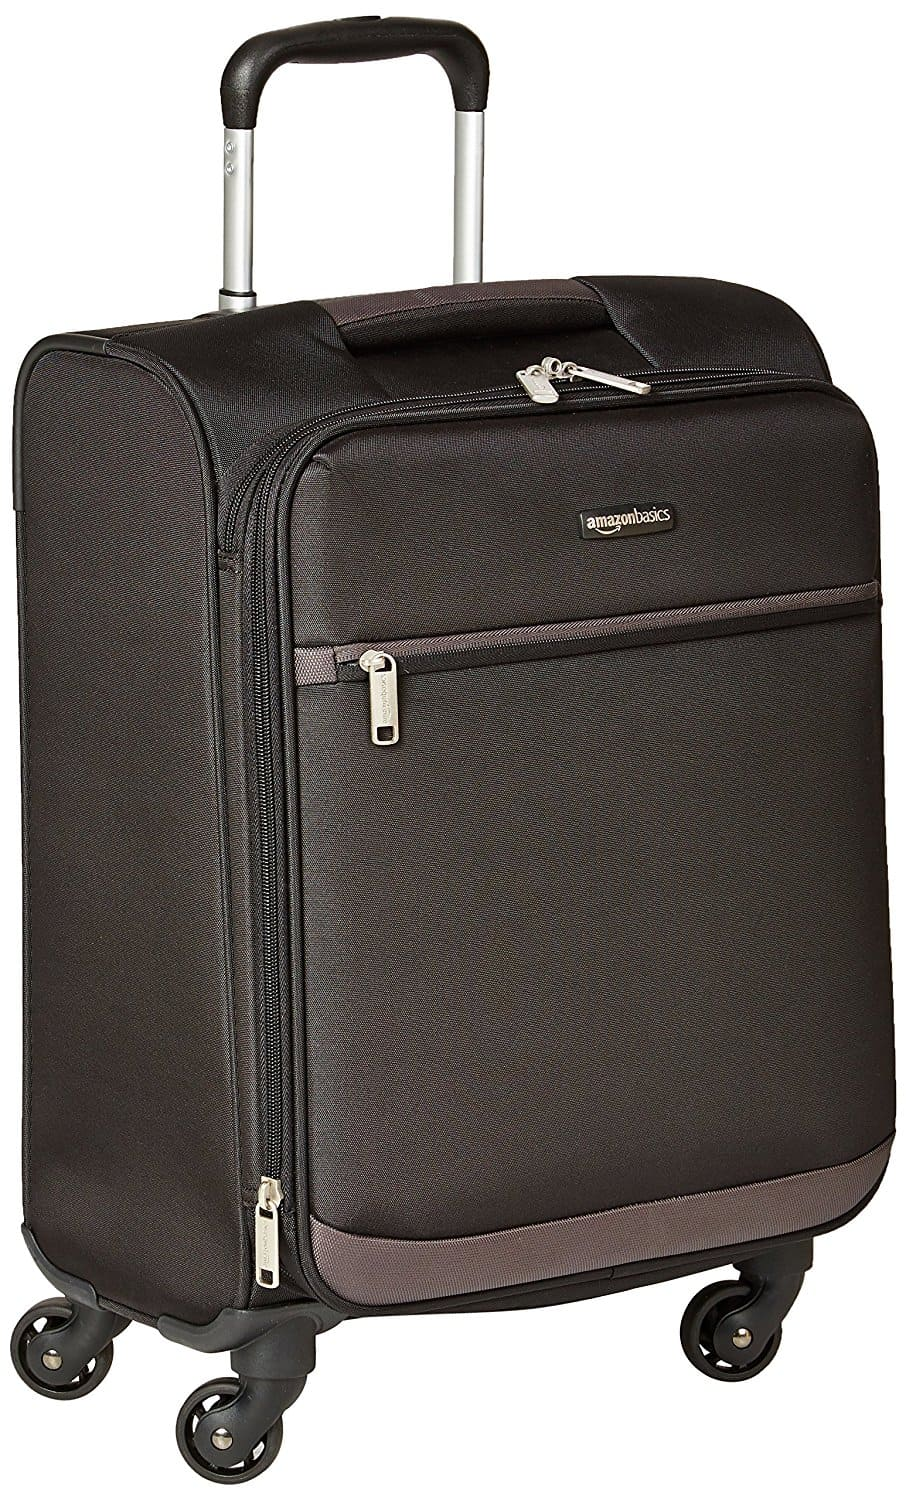 Amazon Basics Luggage